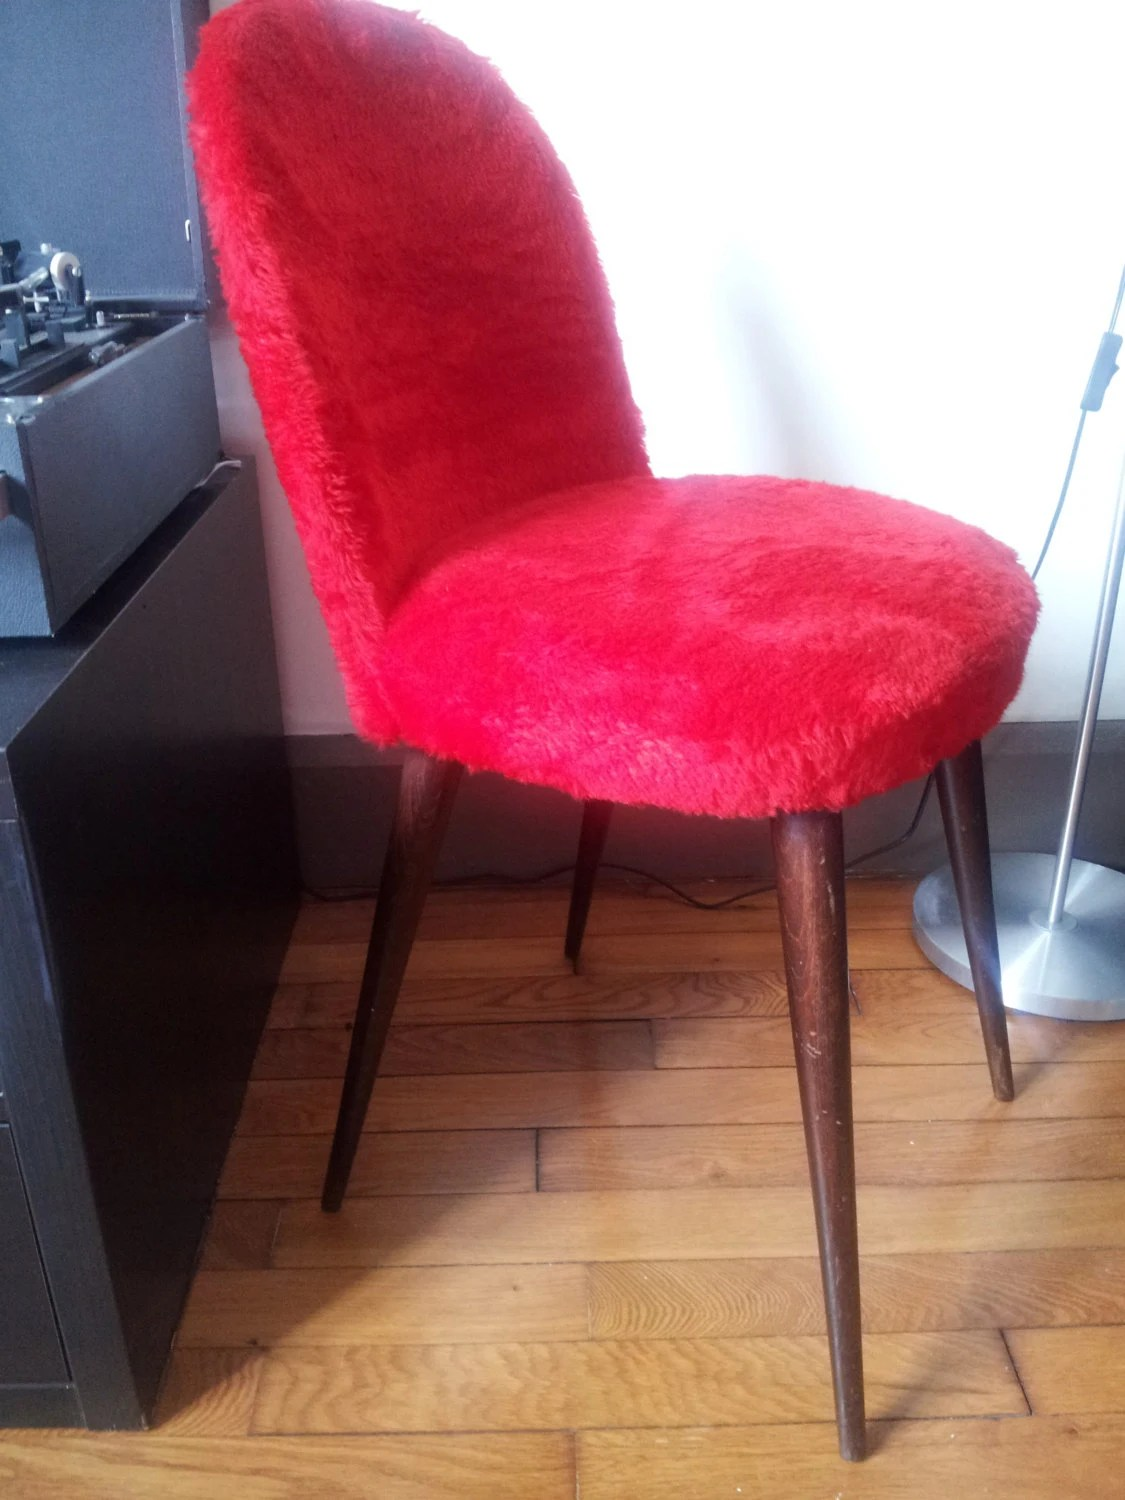 Chaise moumoute rouge haute juice - Chaise rouge transparente ...